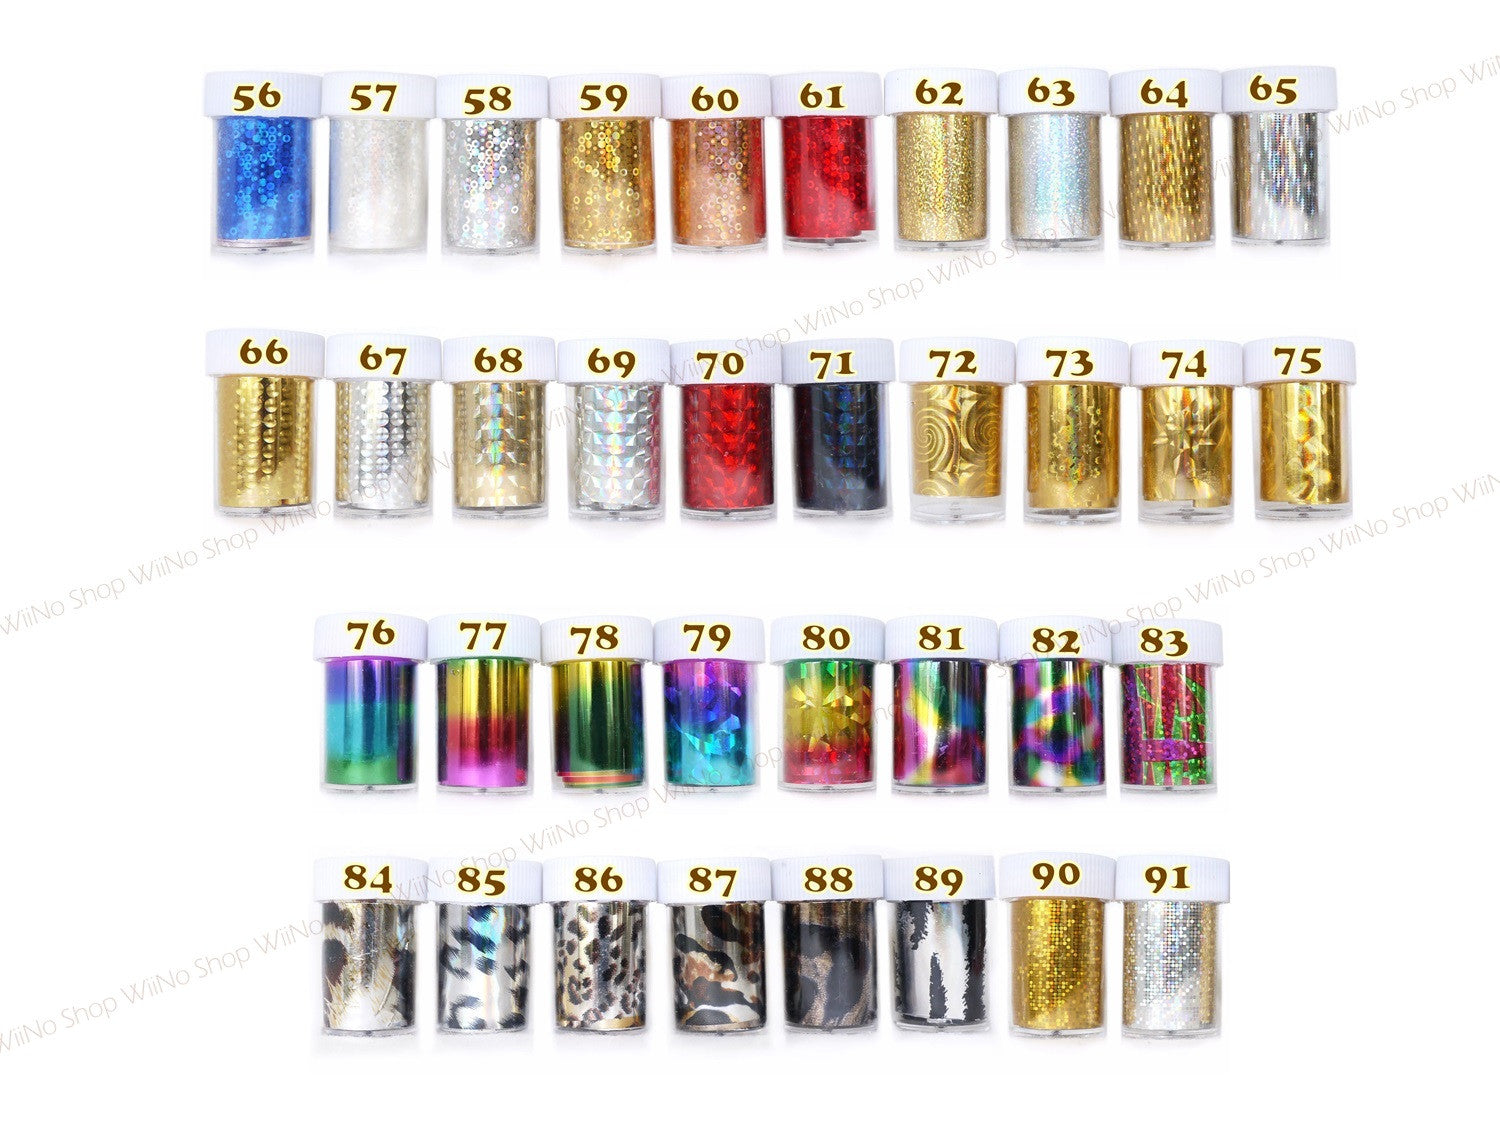 Transfer Foil Nail Art Decoration - 1 pc (56-91) – WiiNo Shop